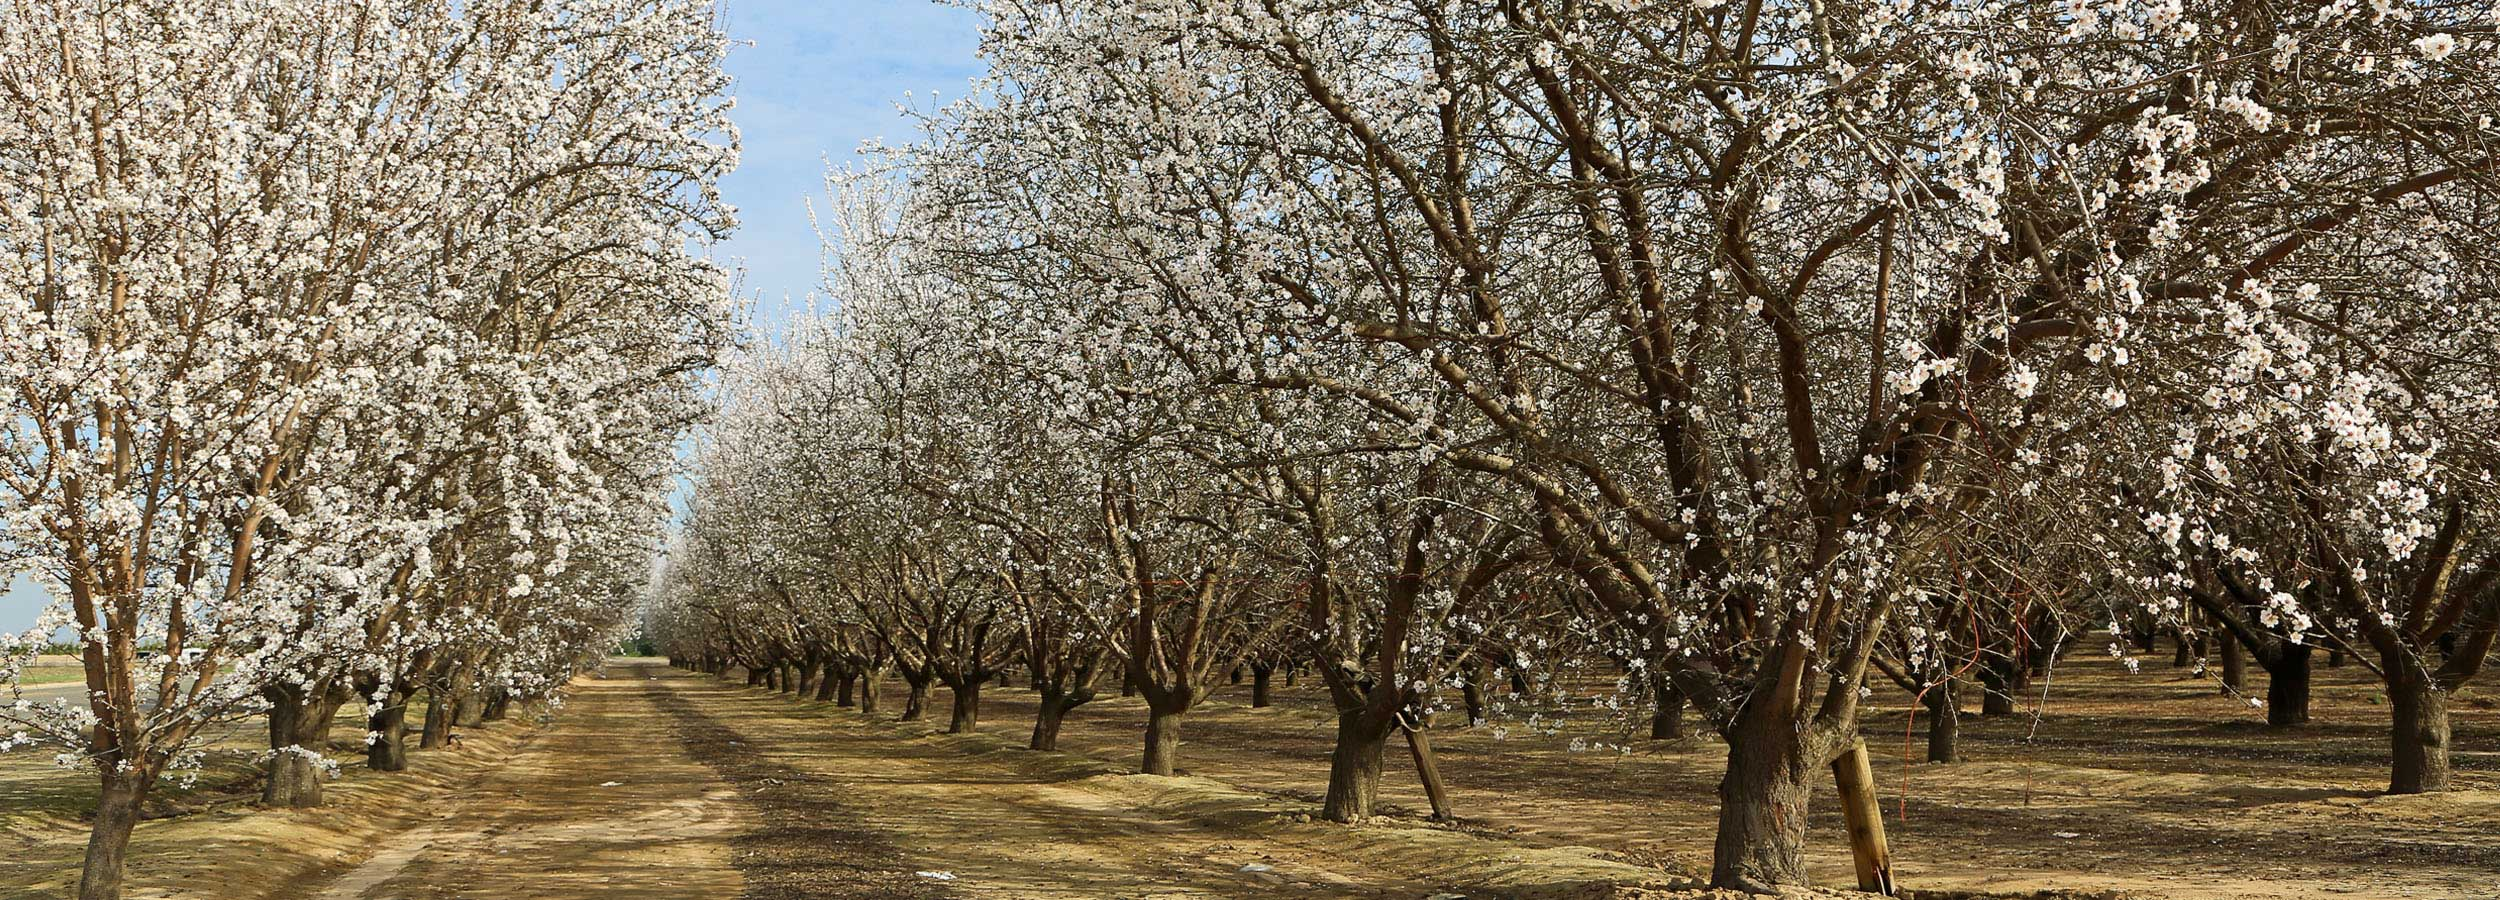 March / April: Hustopeče Festival of almonds and wine